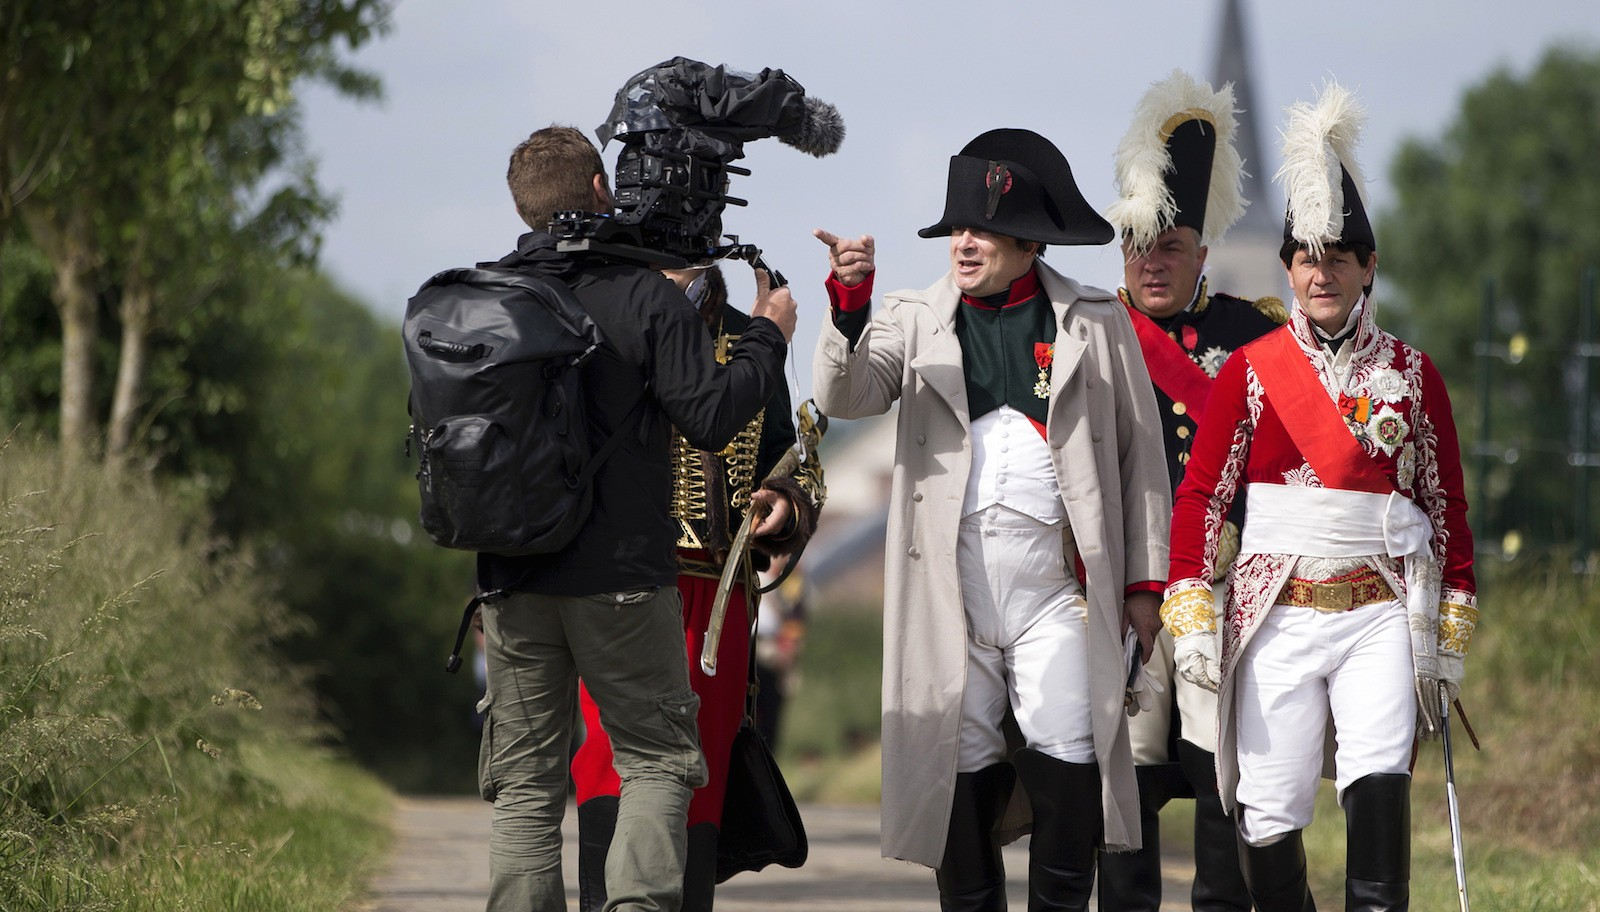 Frenchman Samson gestures as he arrives at the French troops' bivouac while taking part in an re-enactment as French Emperor Napoleon as part of the bicentennial celebrations for the Battle of Waterloo, in Ligny